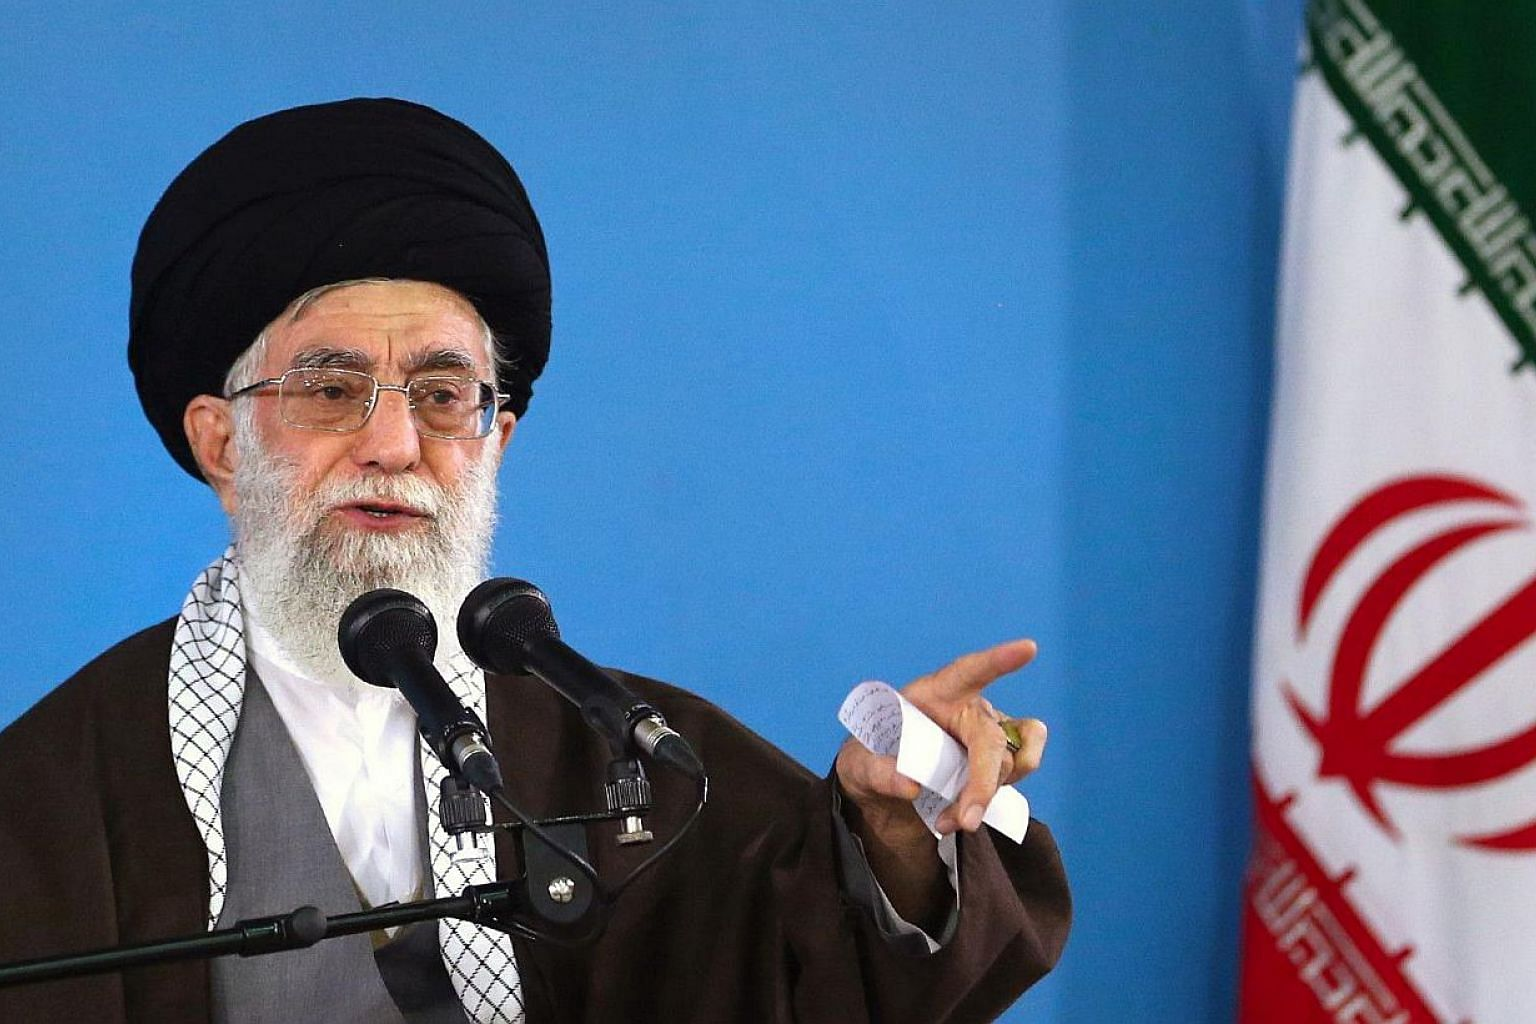 Iran's supreme leader Ayatollah Ali Khamenei on Wednesday, May 20. 2015, ruled out allowing nuclear inspectors to visit military sites or to question scientists, state media reported. -- PHOTO: AFP / HO / KHAMENEI.IR